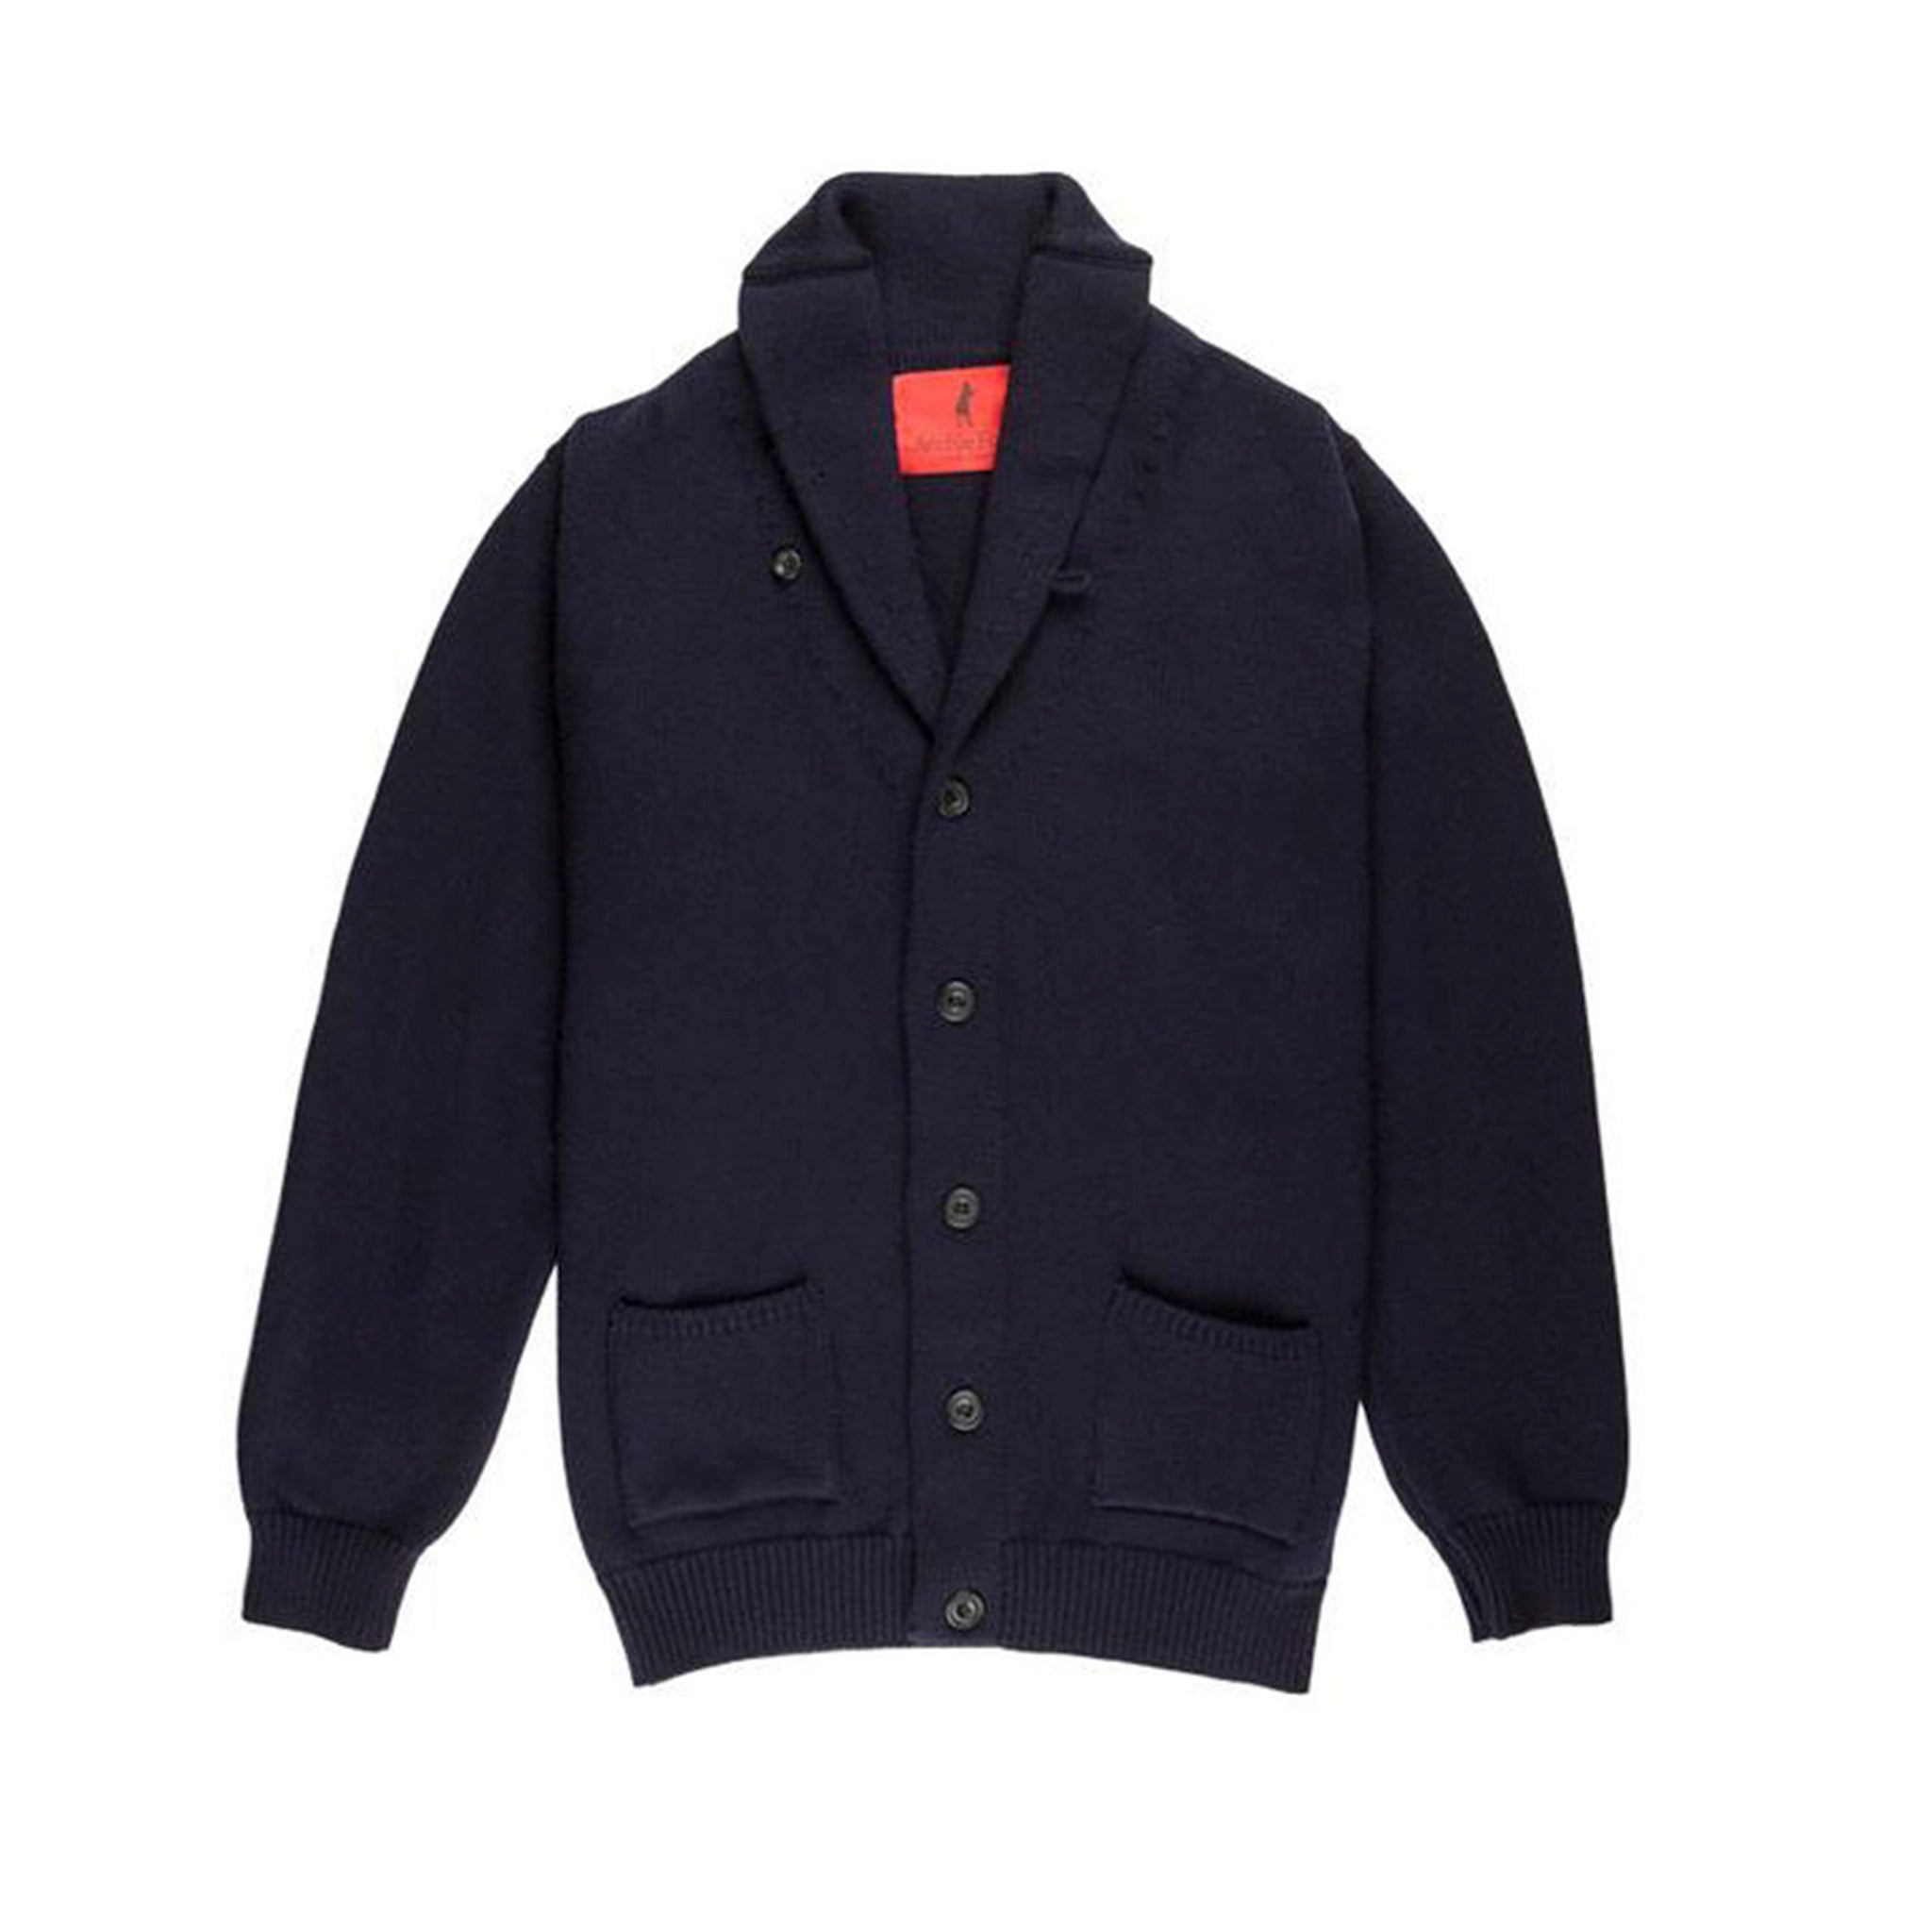 Archie Foal Men's KENNAN Shawl Collar Cardigan in Navy